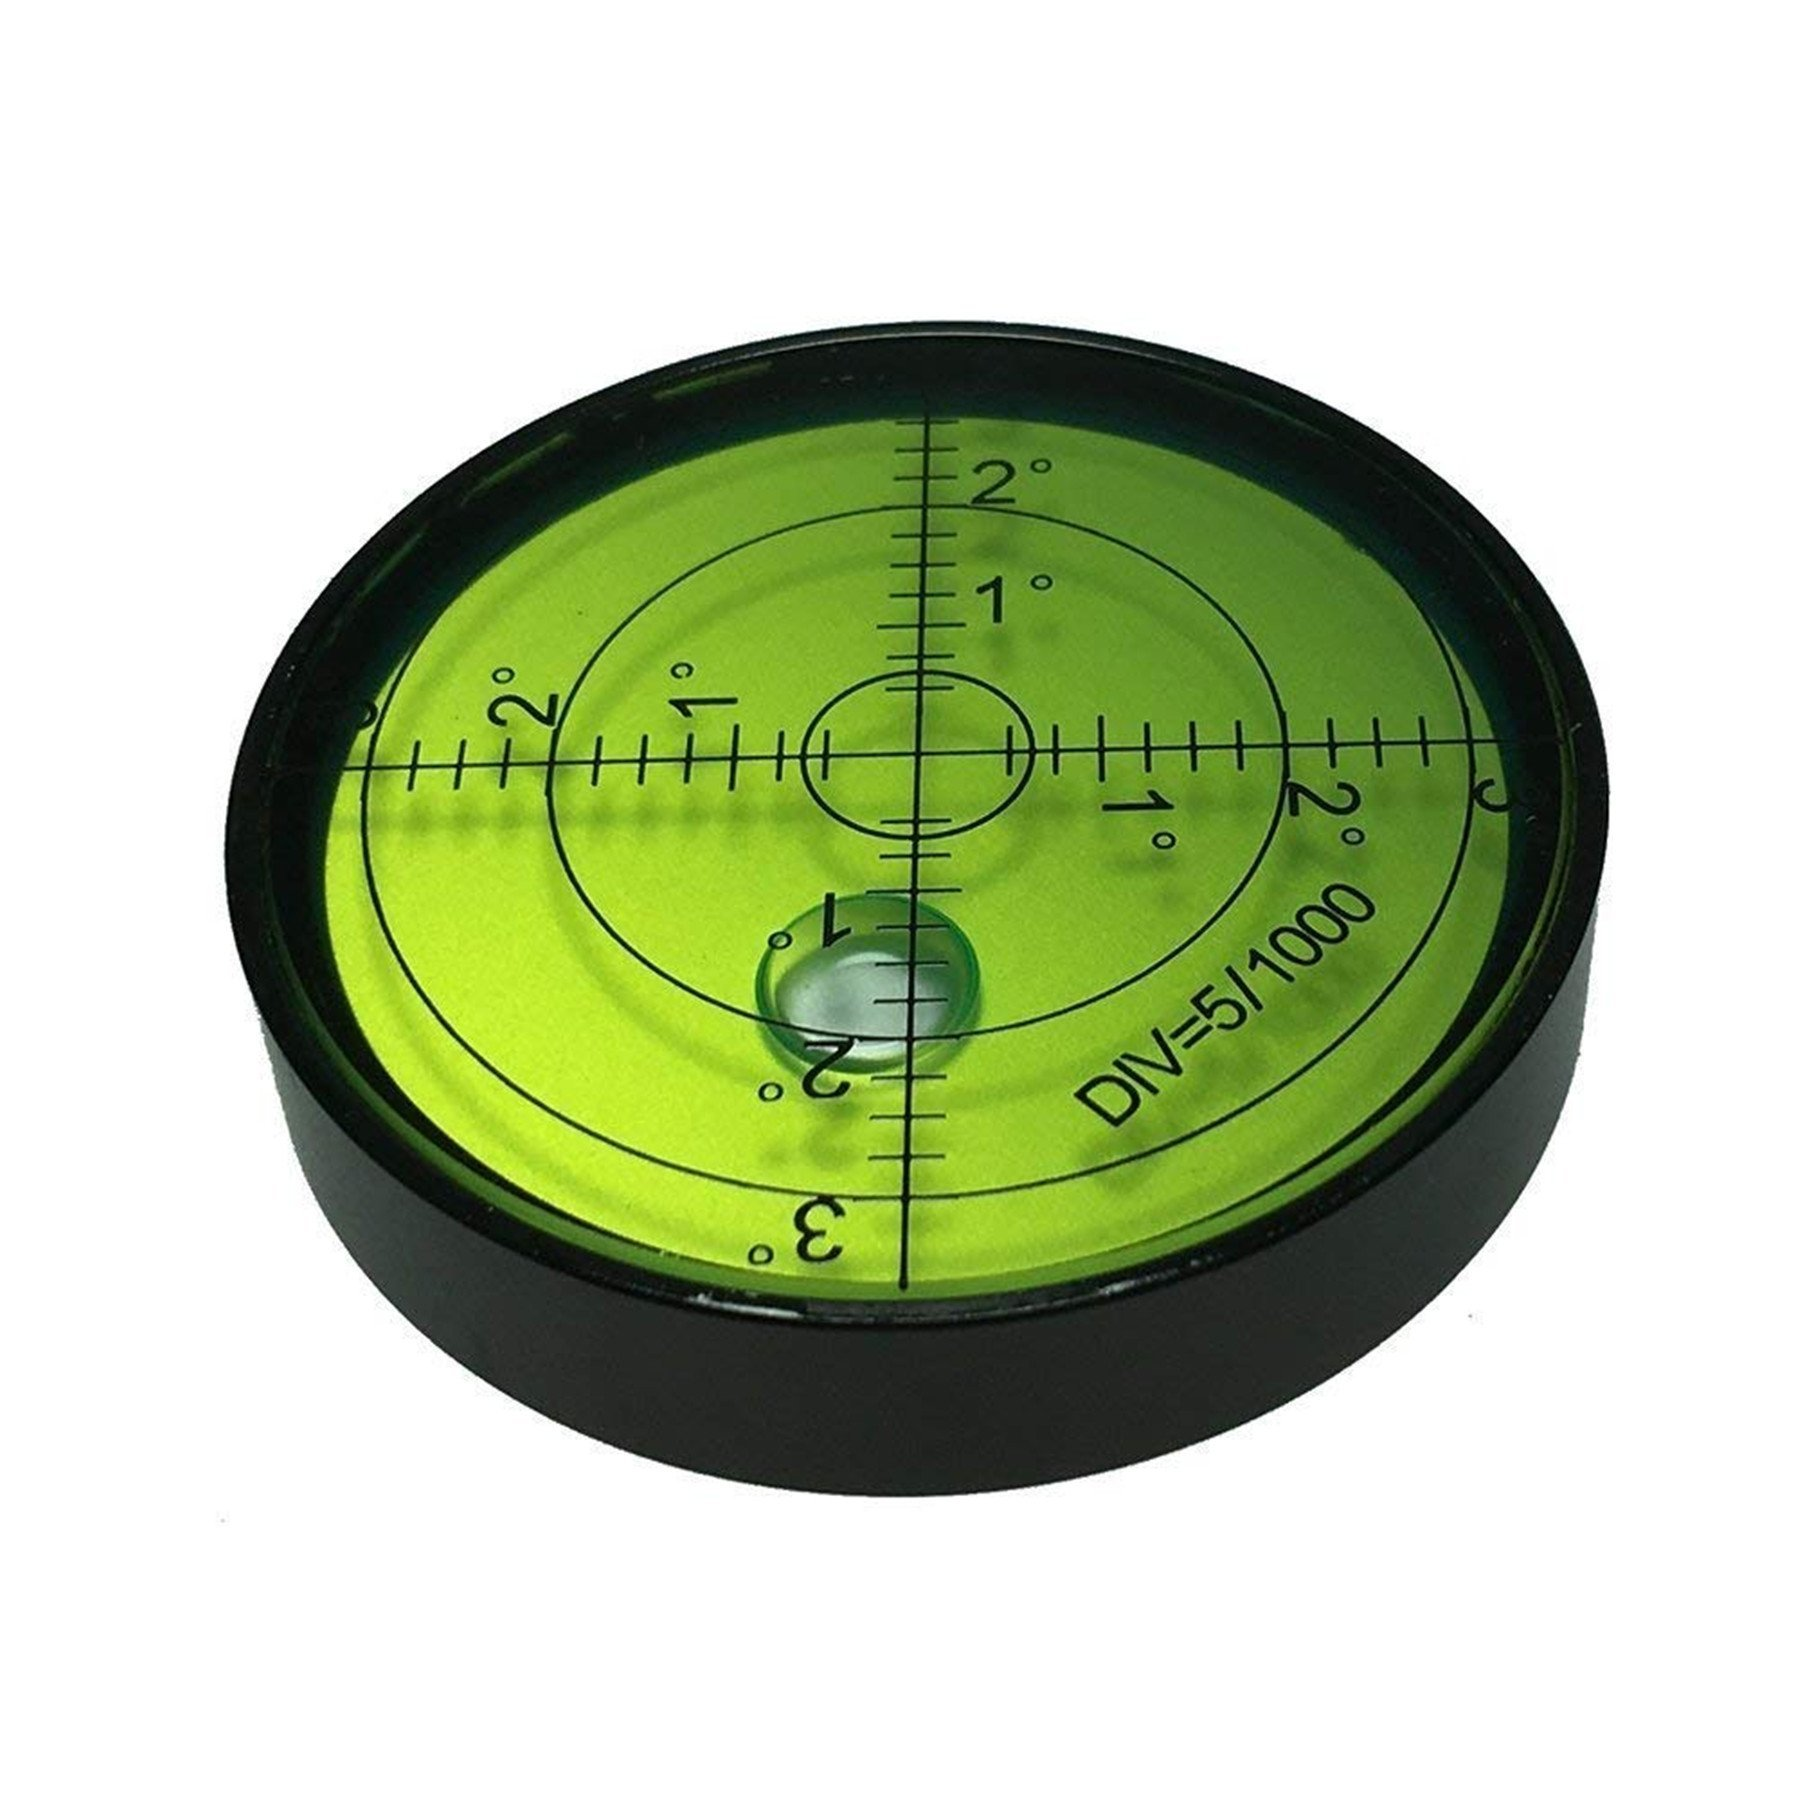 HUILINMEI aluminum alloy shell precision round bullion bubble level bubble surface level inclinometer for measuring instruments and triangles, Ø60mm, precision 15' / 2, high precision horizontal bubbl